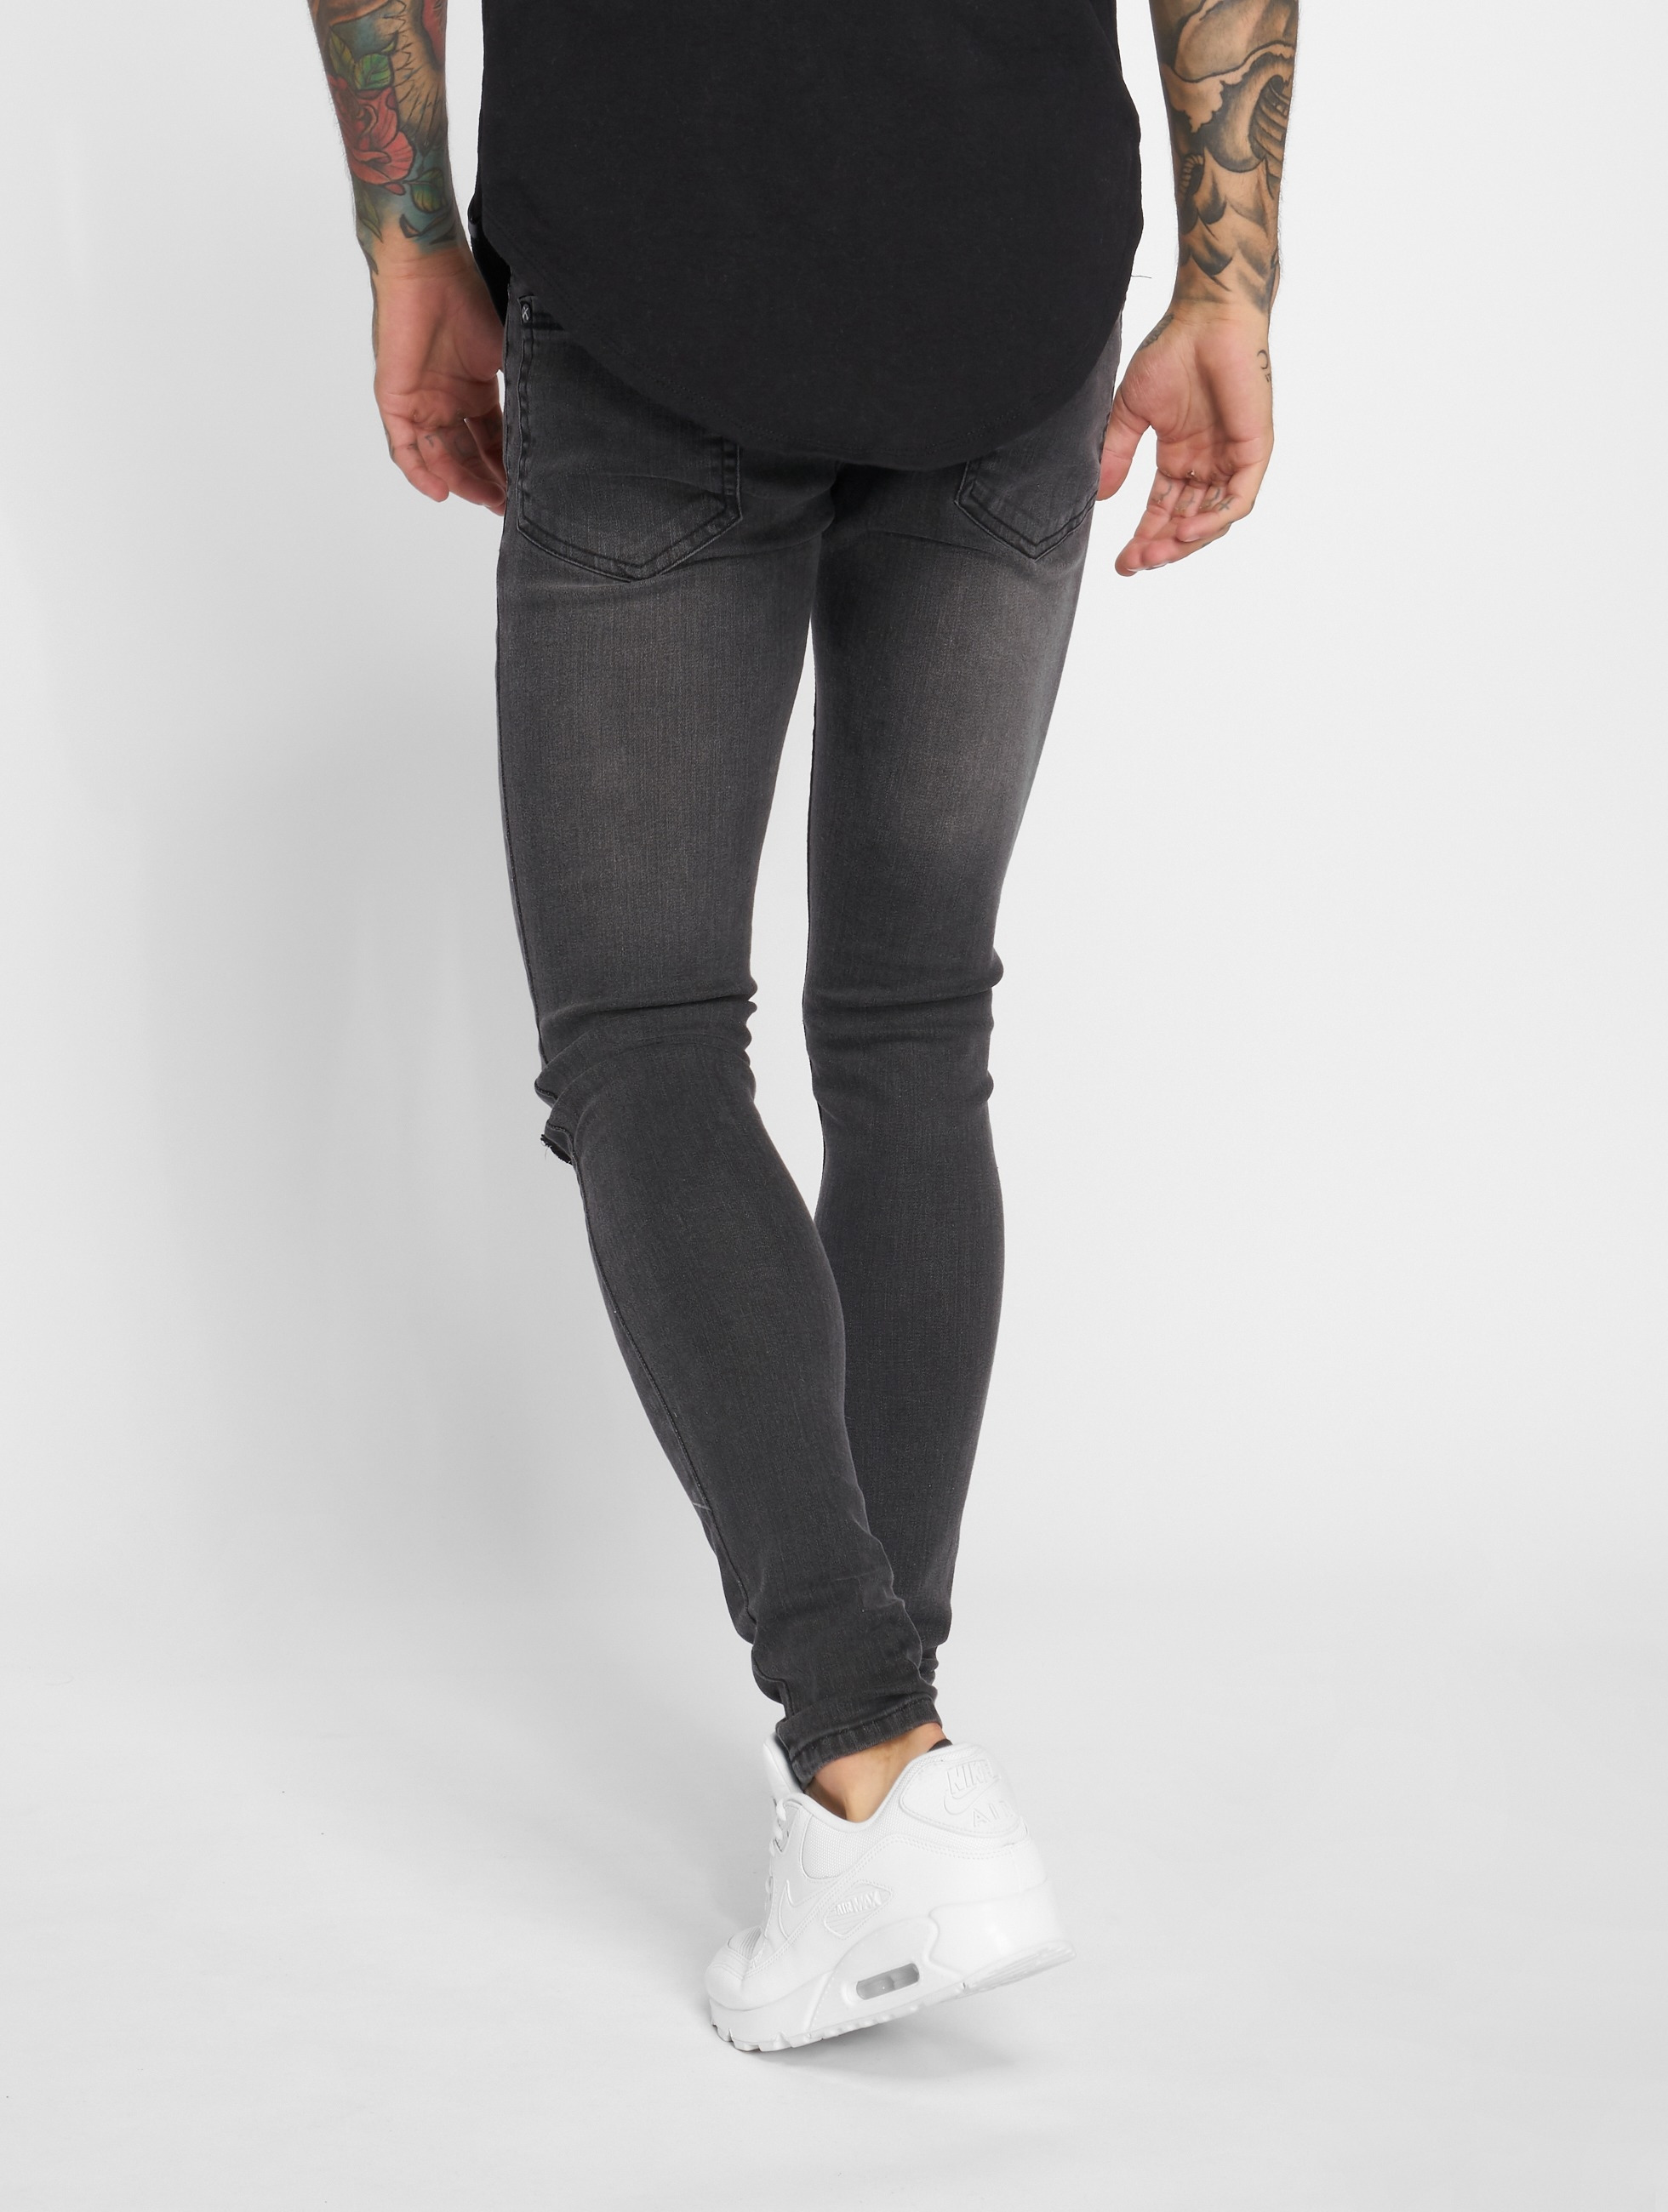 Criminal Damage Skinny Jeans Ripper schwarz